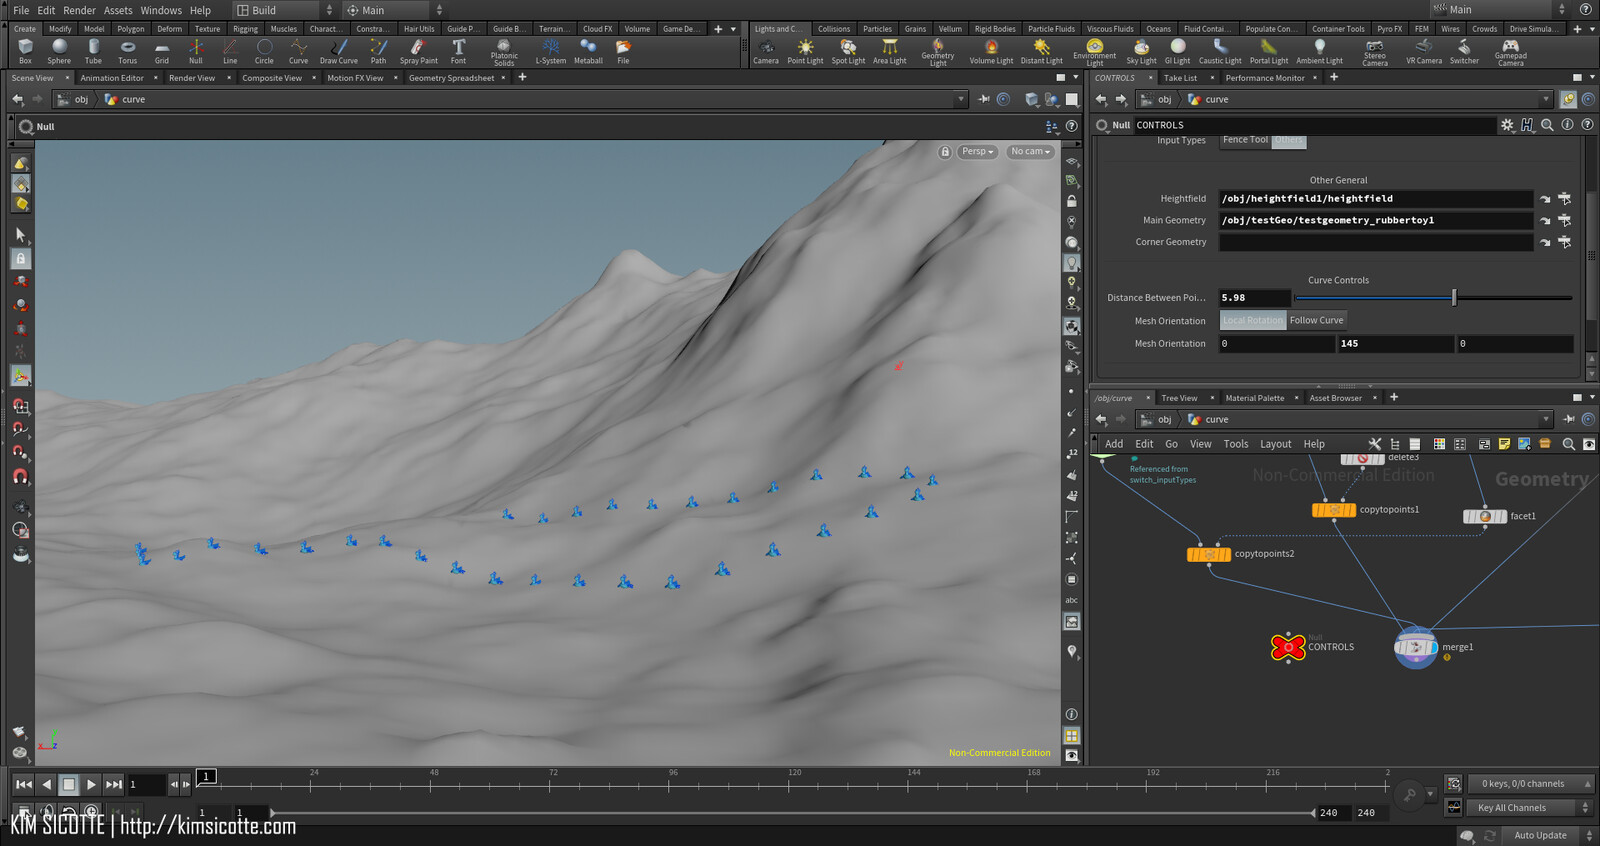 You can use any mesh to follow the curve and conform to the terrain